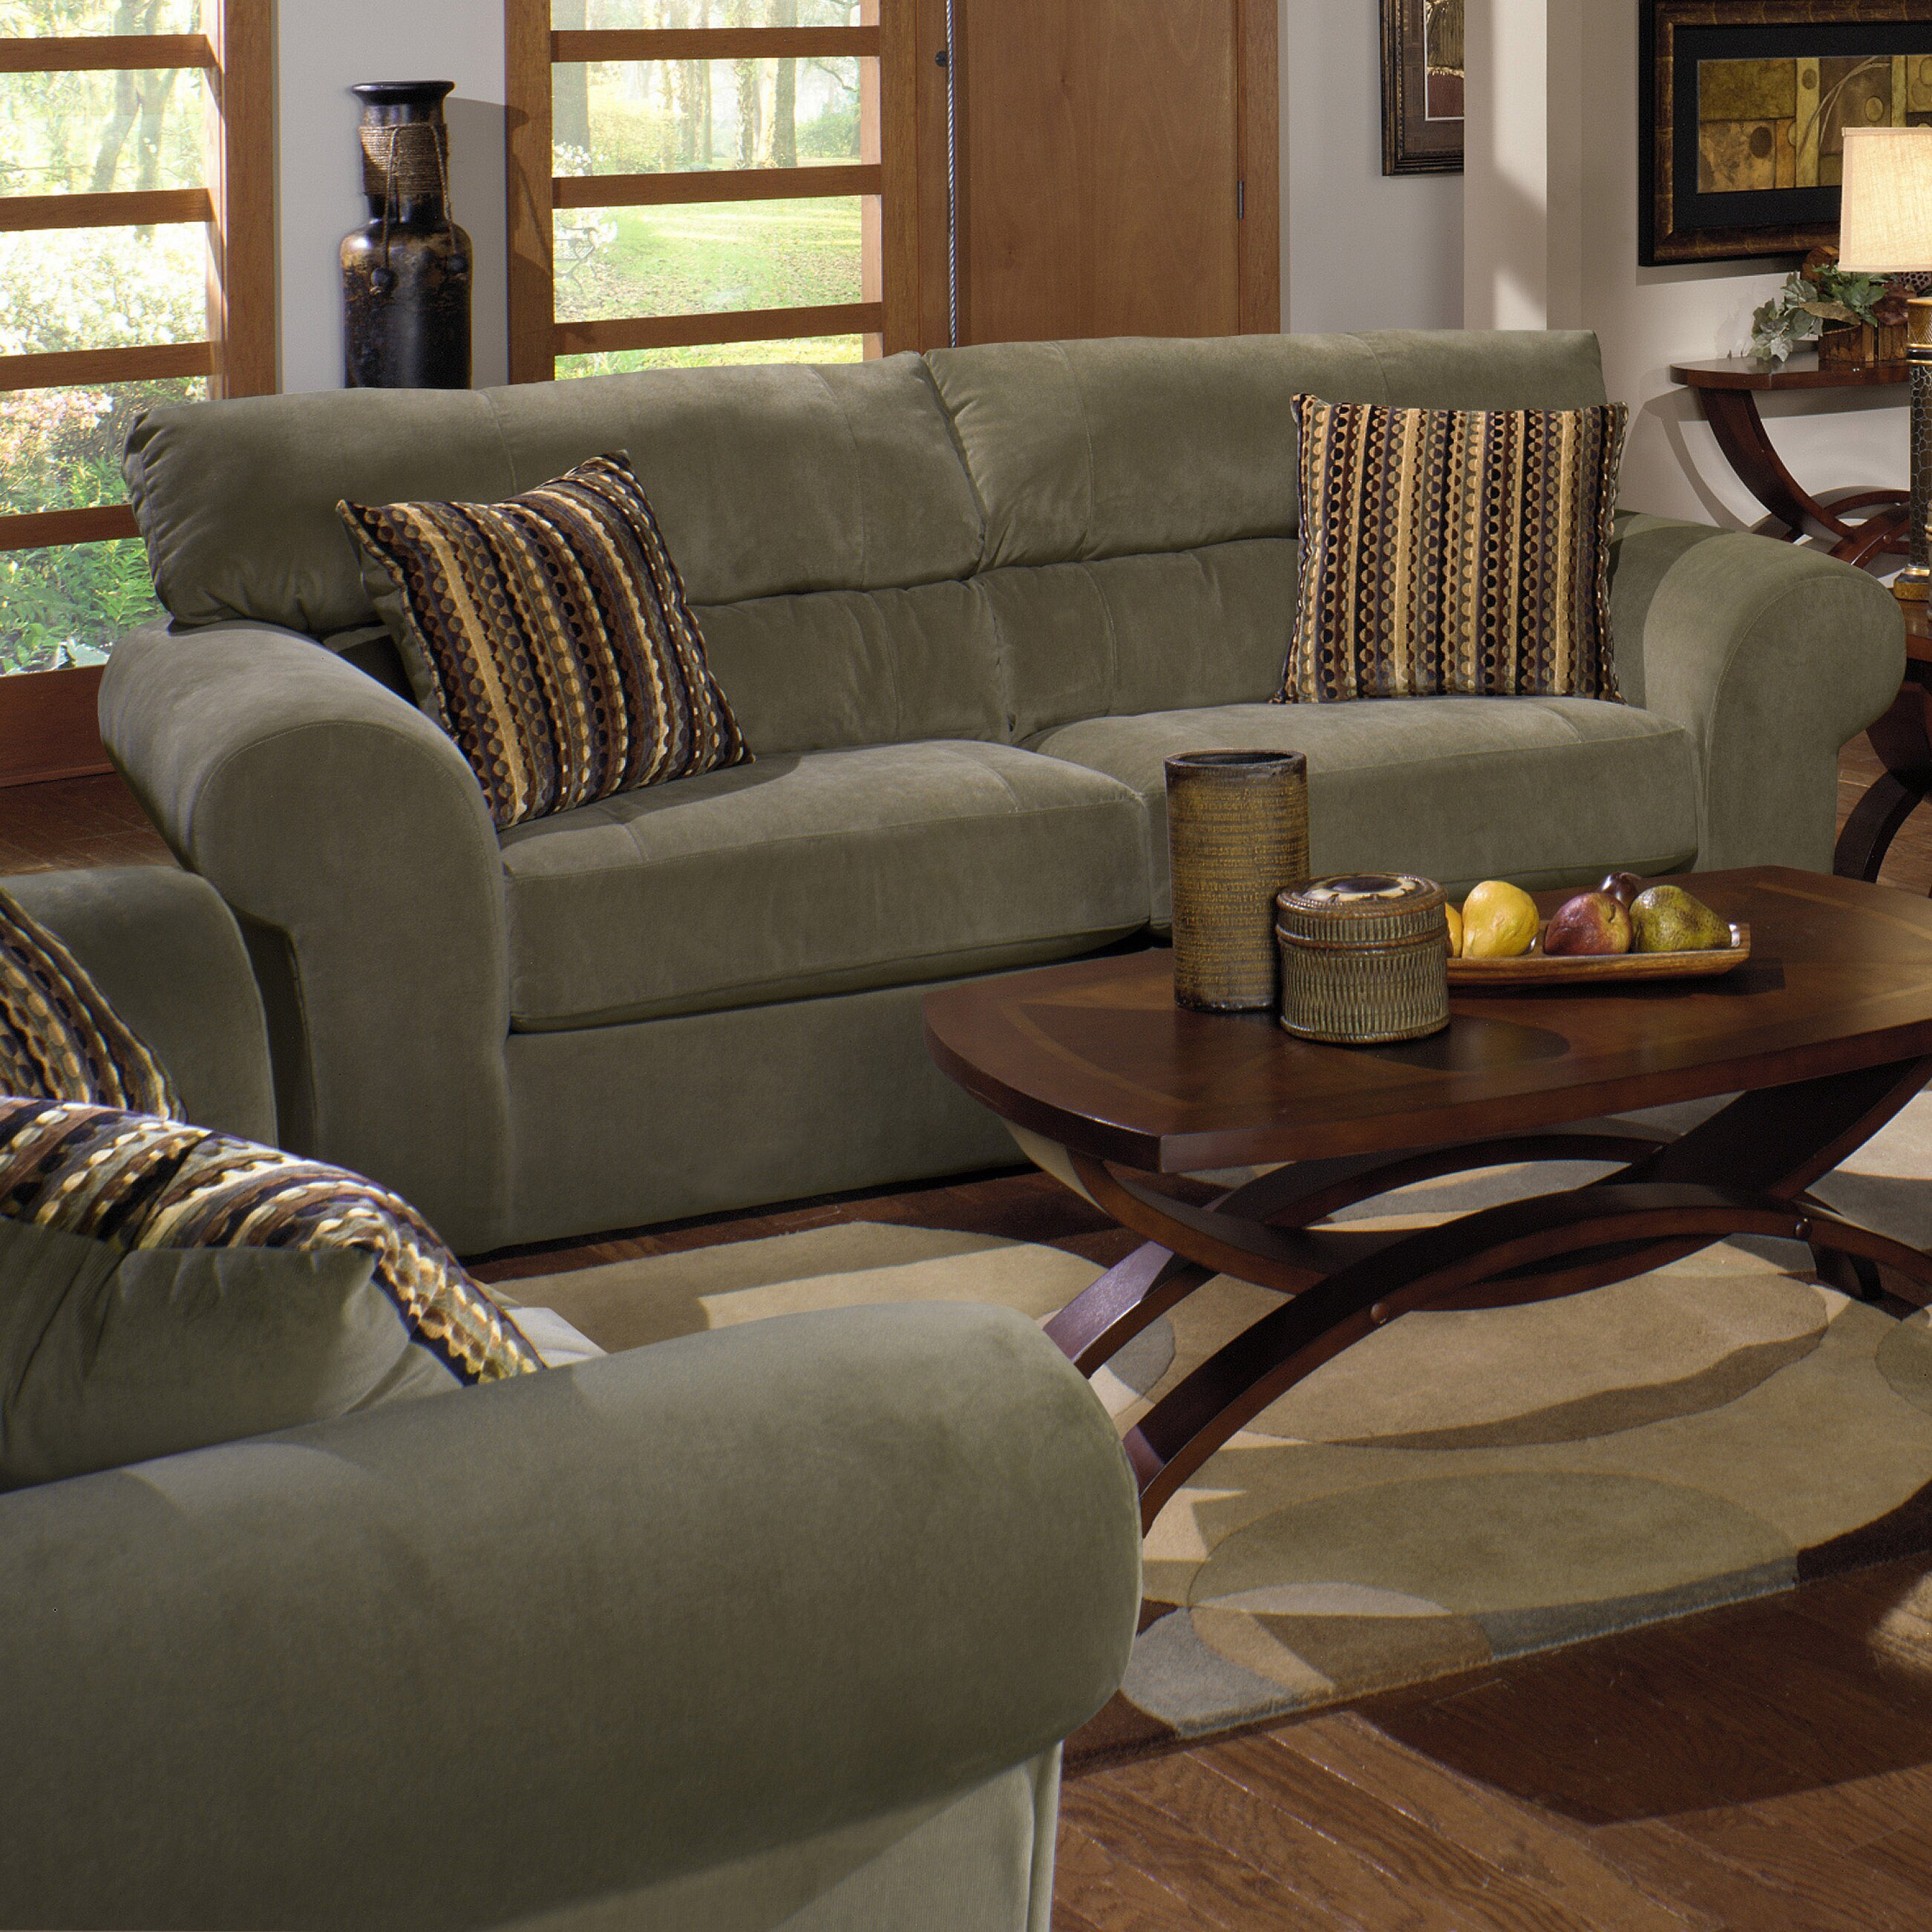 Jackson Furniture Mesa Queen Sleeper Sofa & Reviews